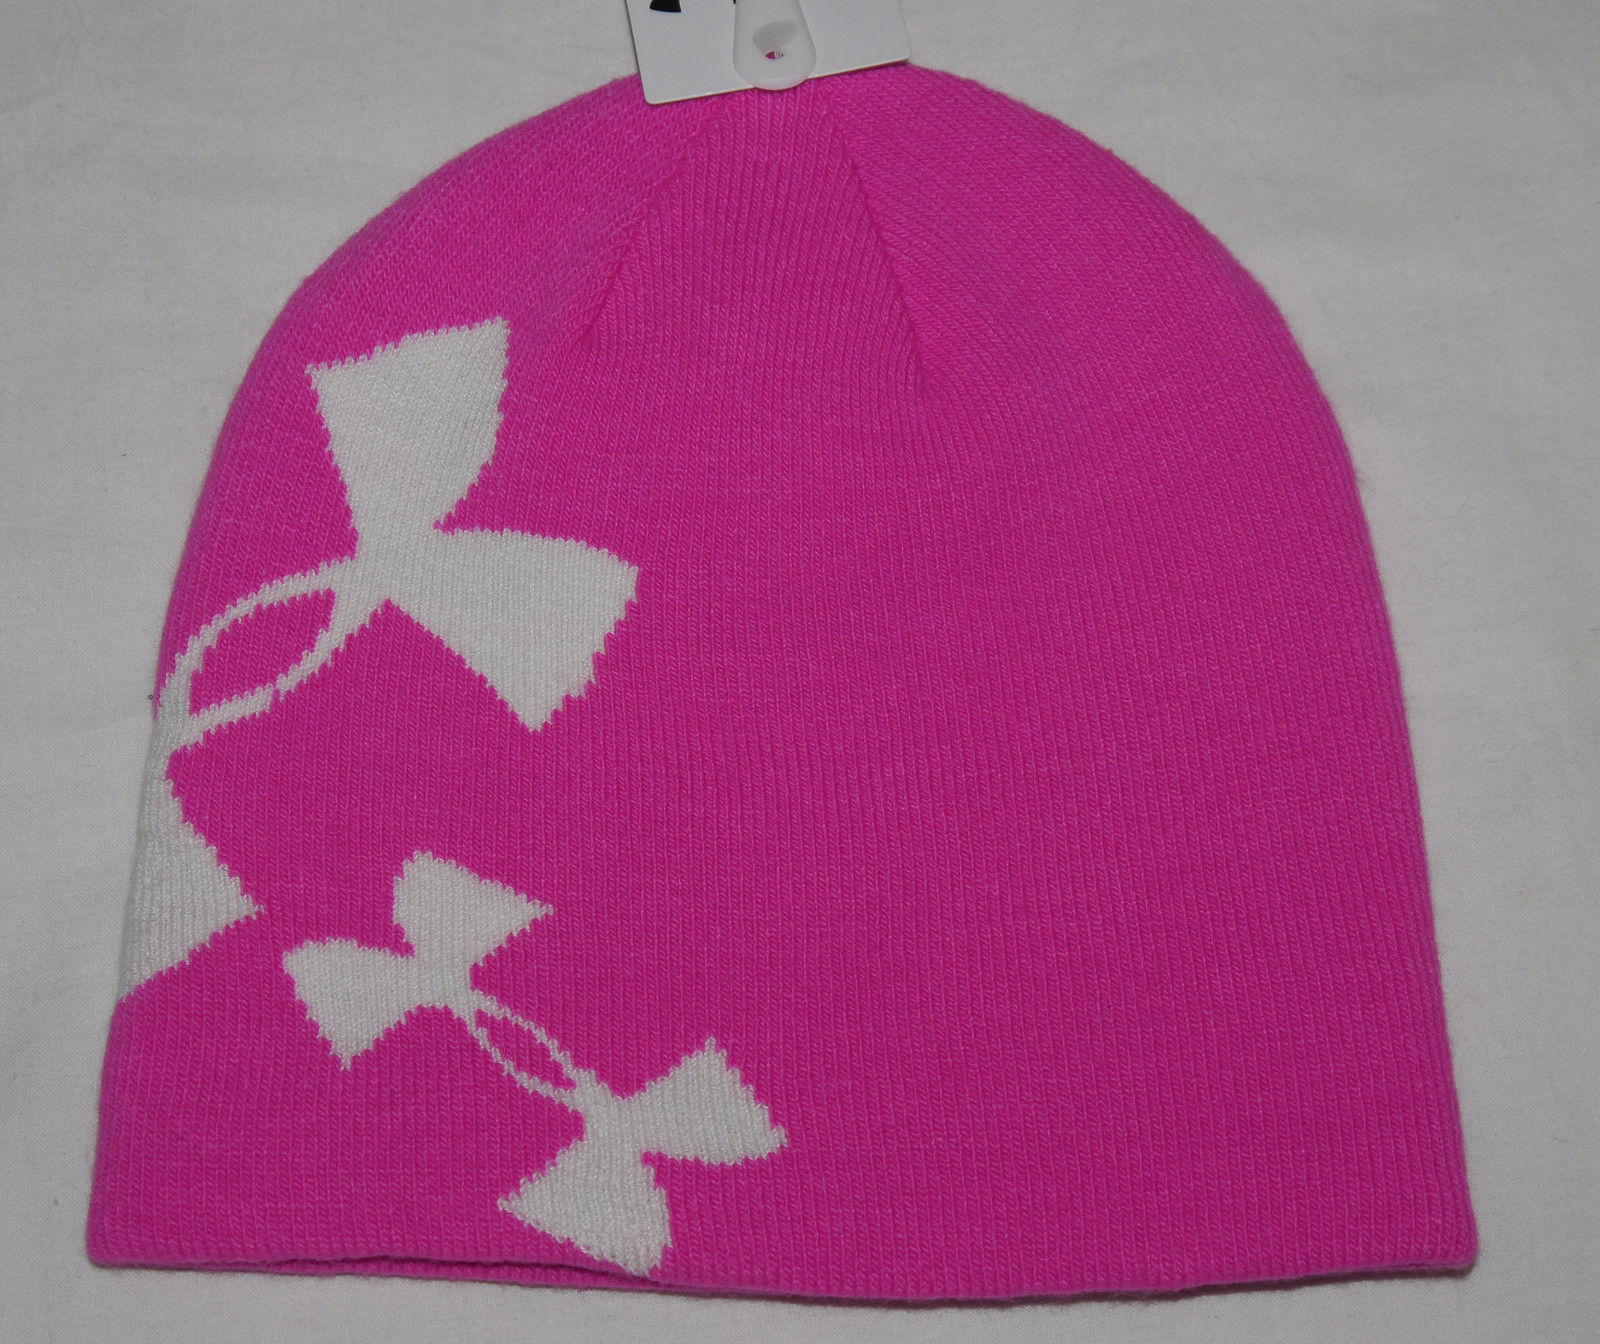 Under Armour Youth Girl's Rebel Pink/White Reversible to Gray/Black Beanie Hat 12551